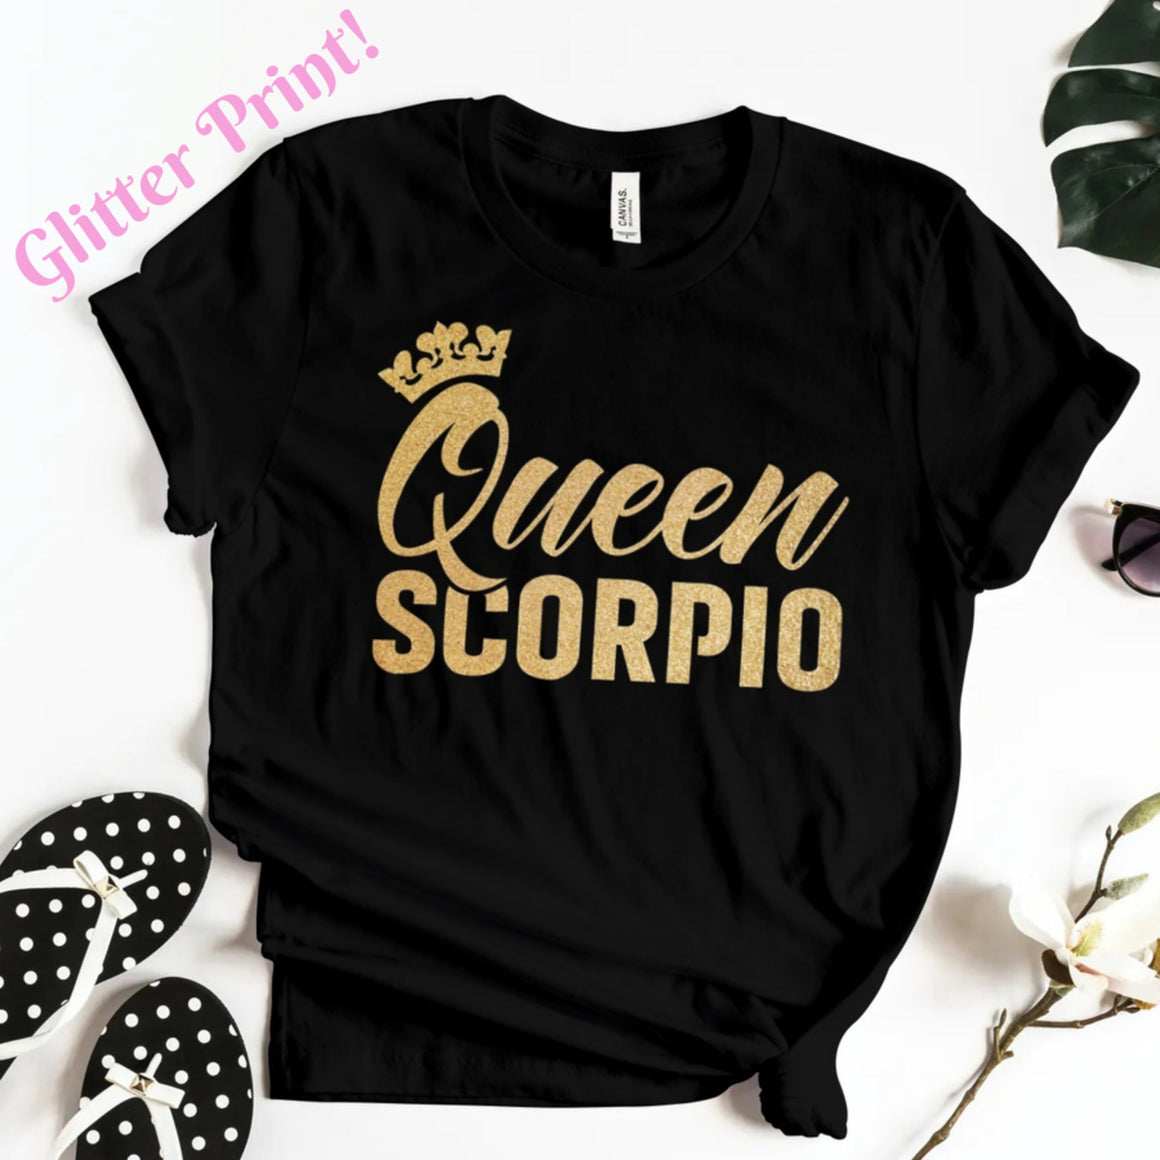 QUEEN SCORPIO GOLD GLITTER T-SHIRT - Gray's Active Wear Printing